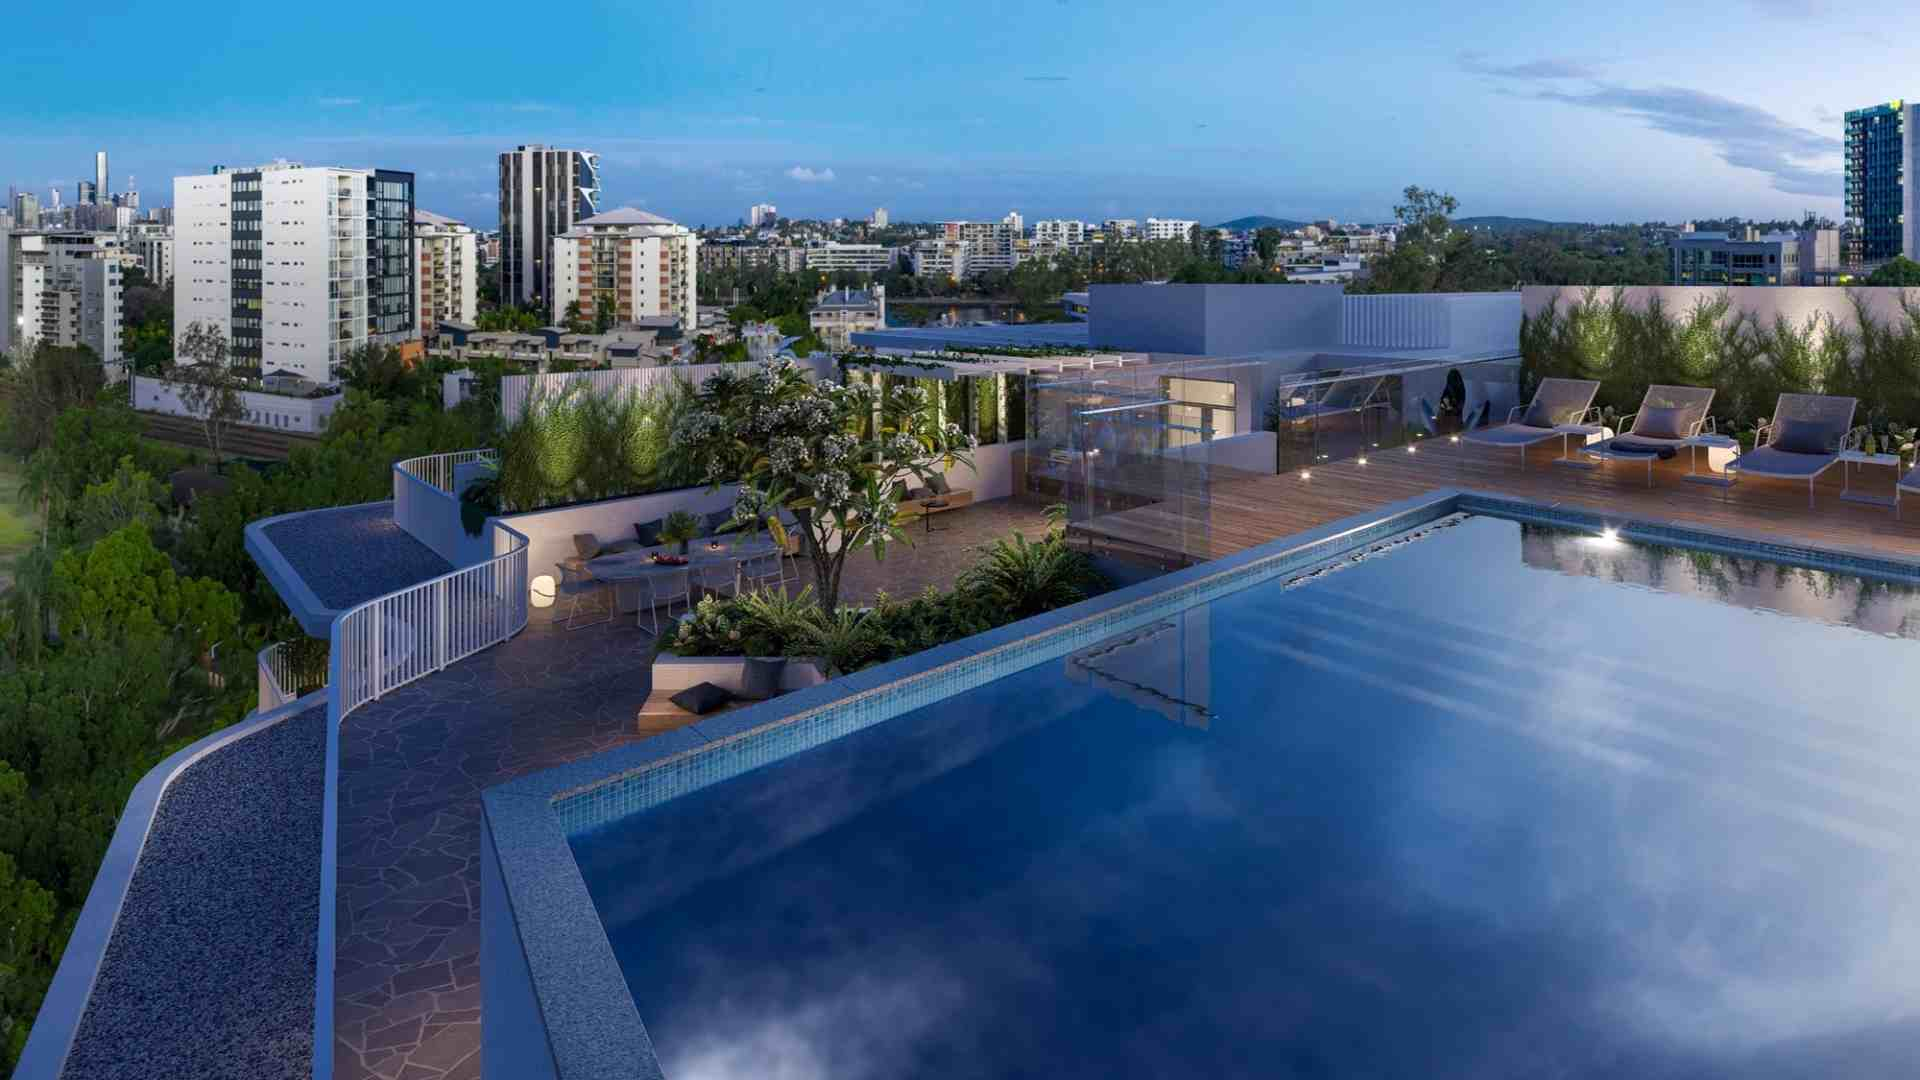 rooftop pool with bbq pit and lounge chairs